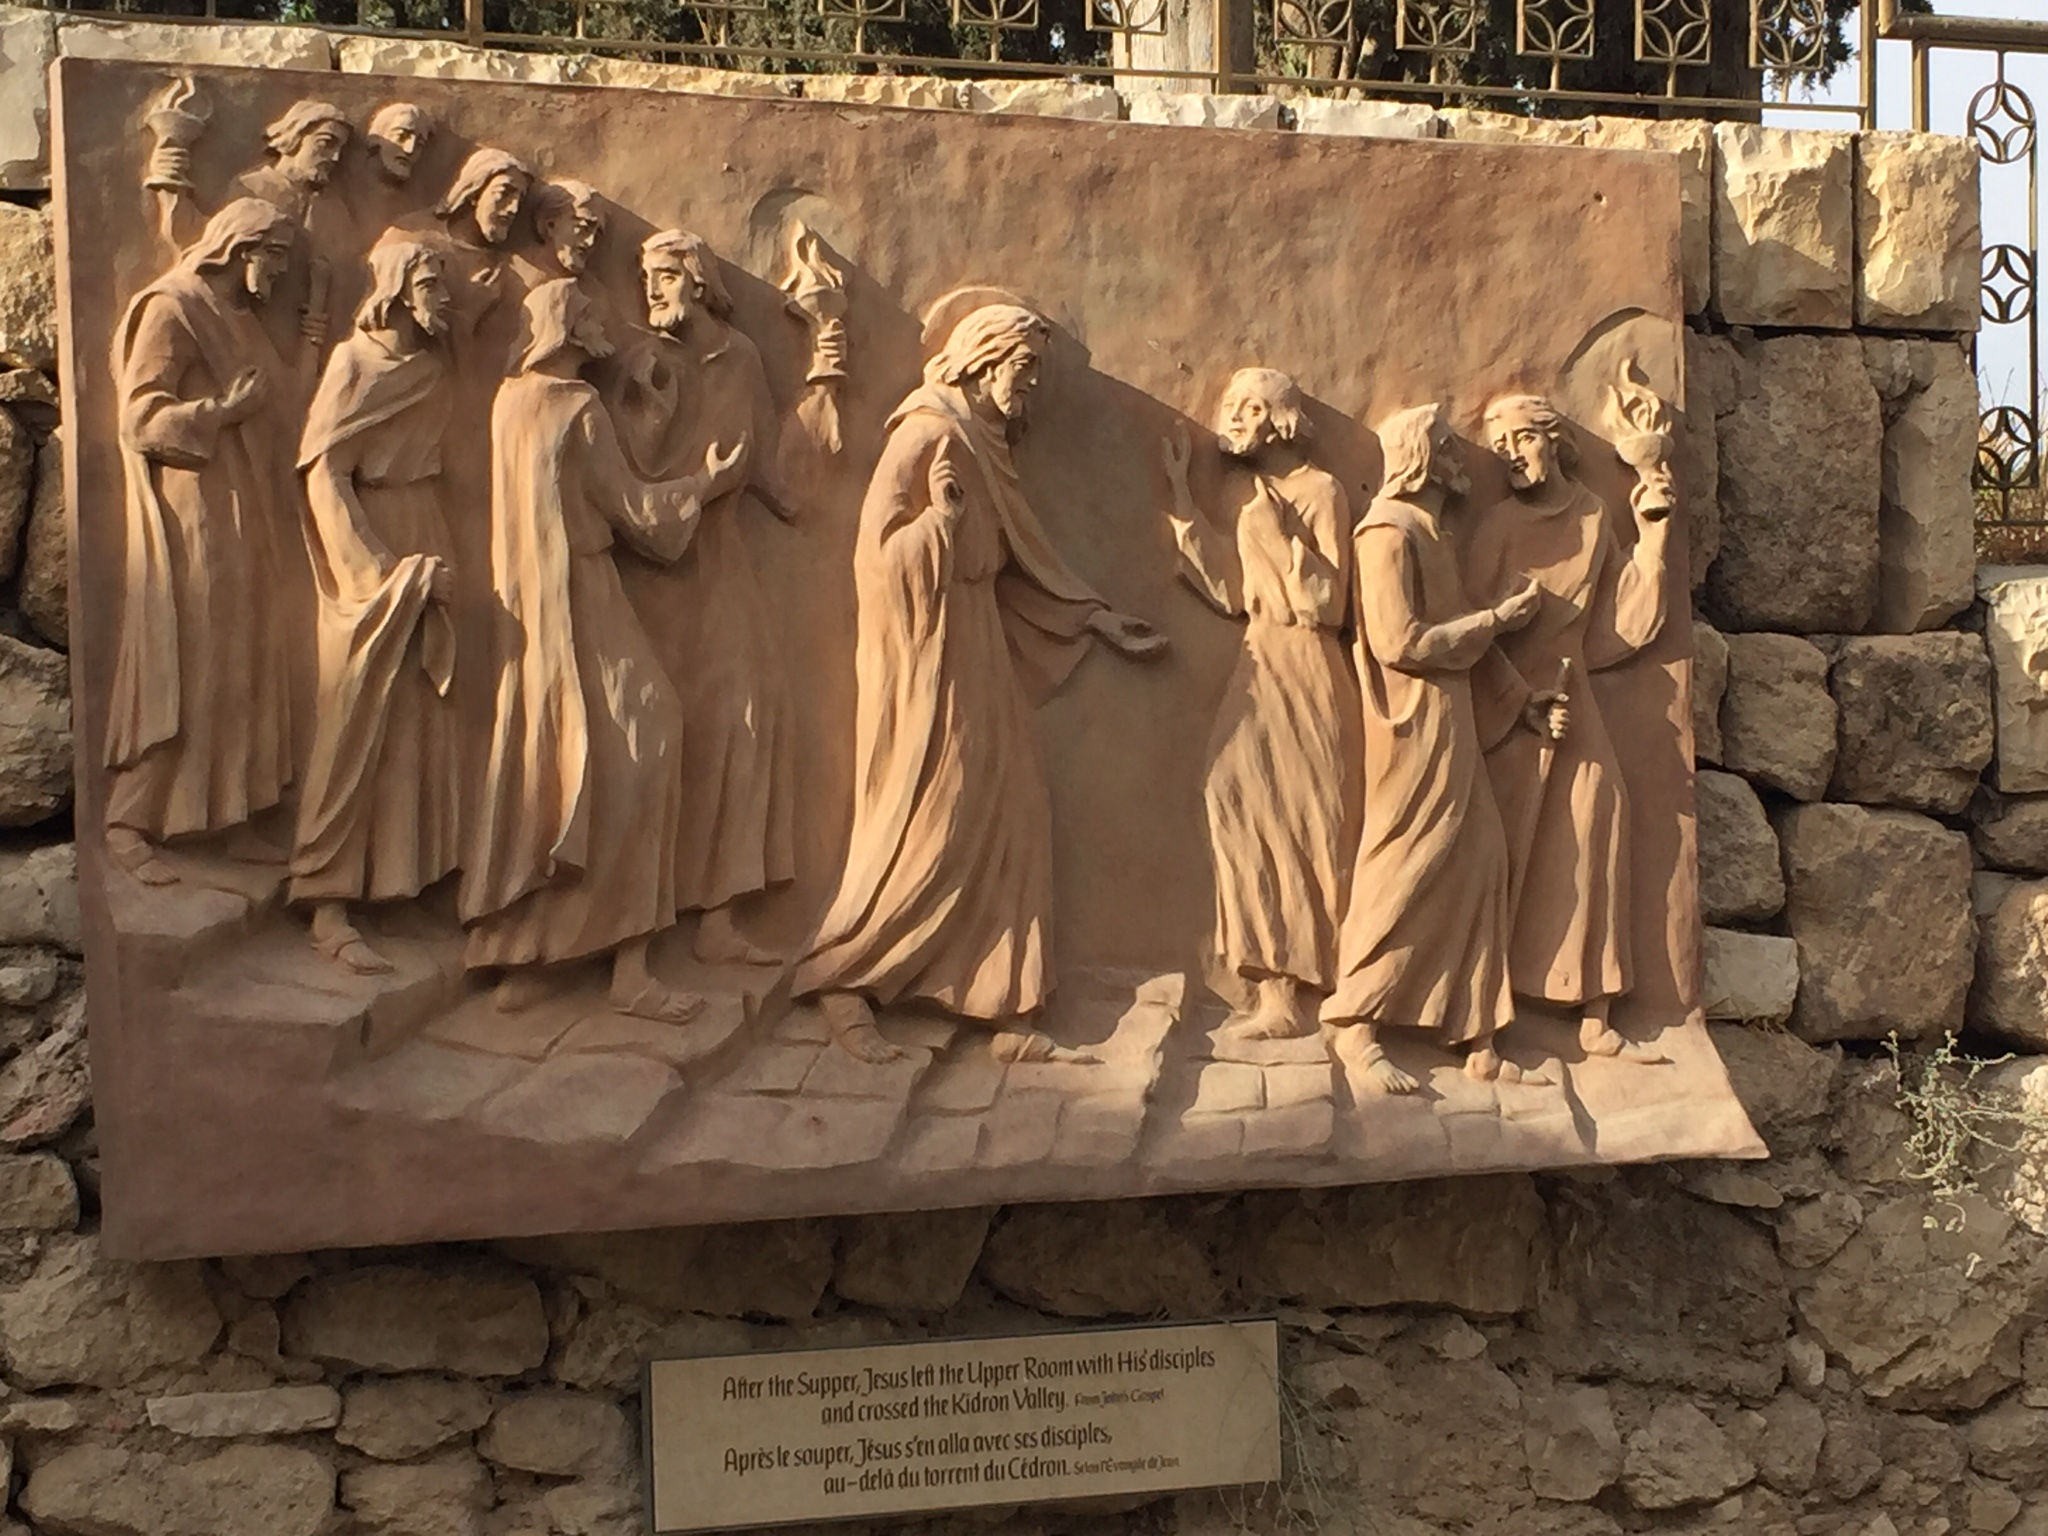 Days 7/8: The last week of Jesus - Bethpage (where Jesus wept), Garden of Gethsemane, Rock of the Last Agony, Gallicantu (where He was denied by Peter)